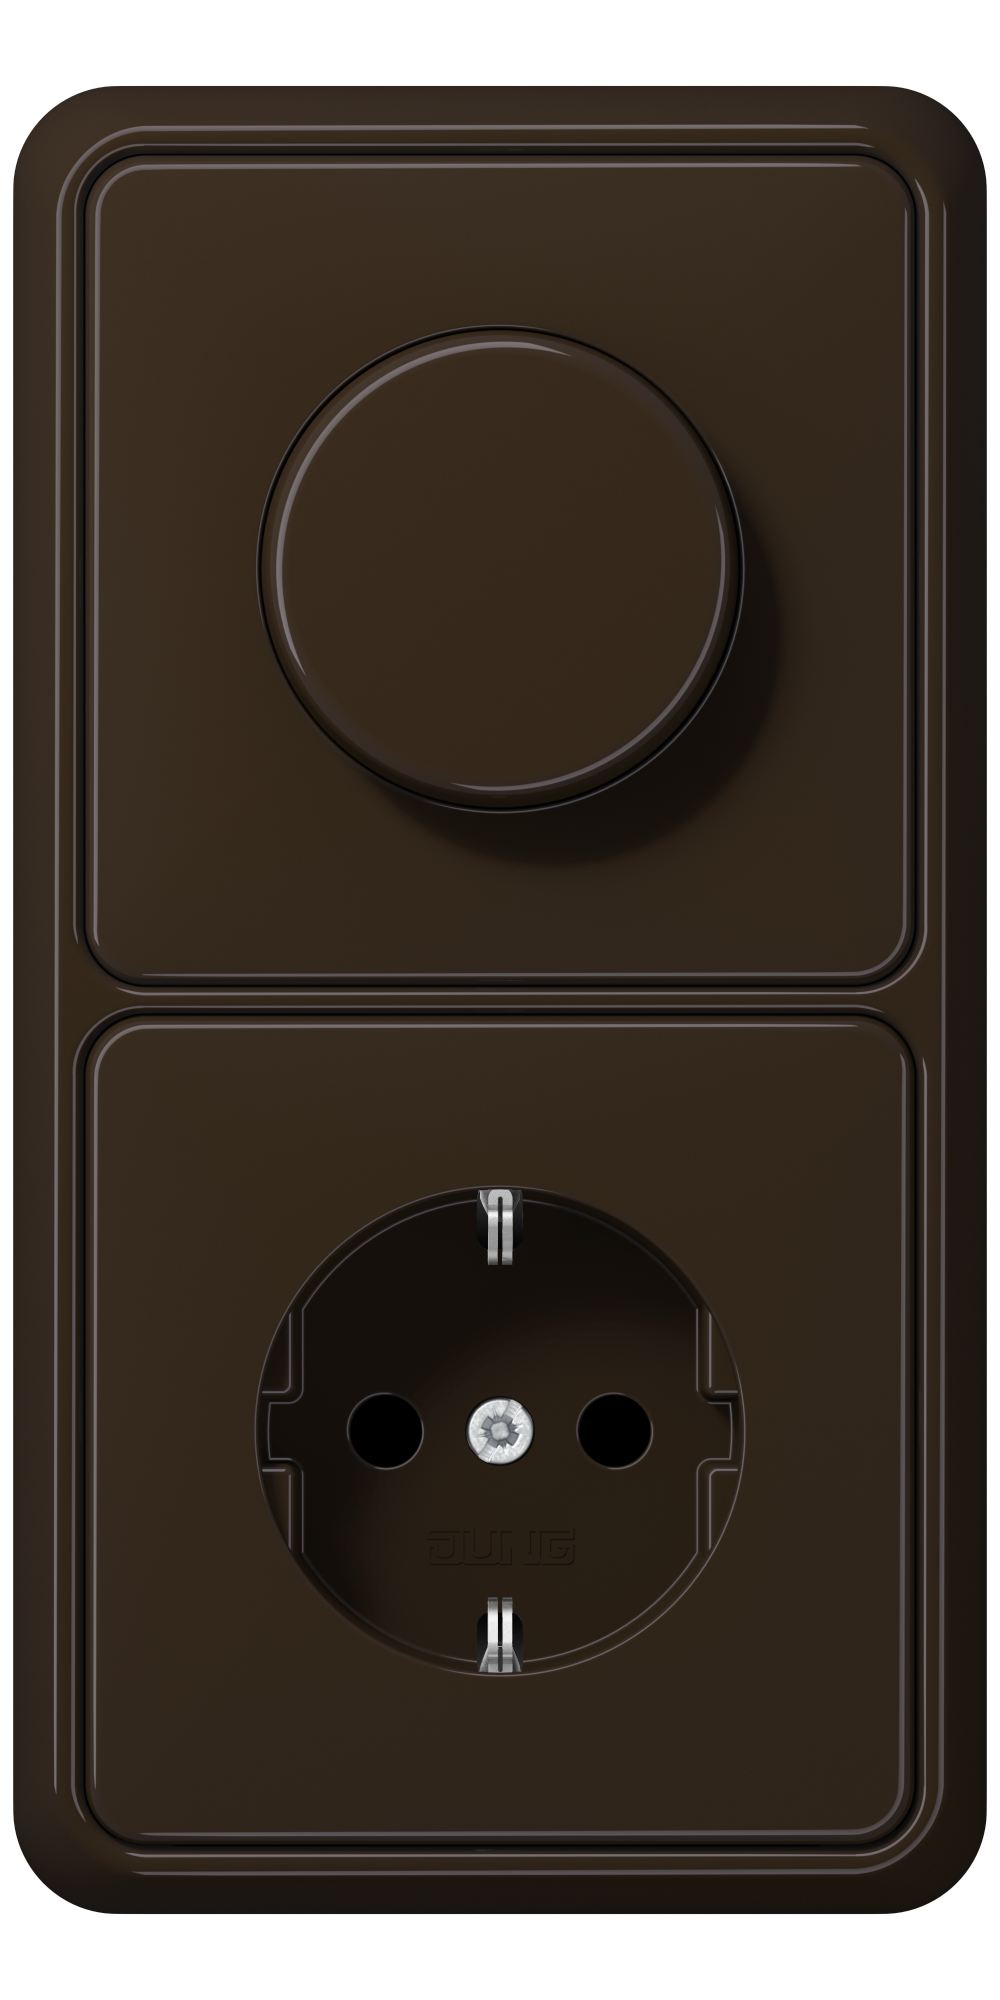 JUNG_CD500_brown_dimmer-socket